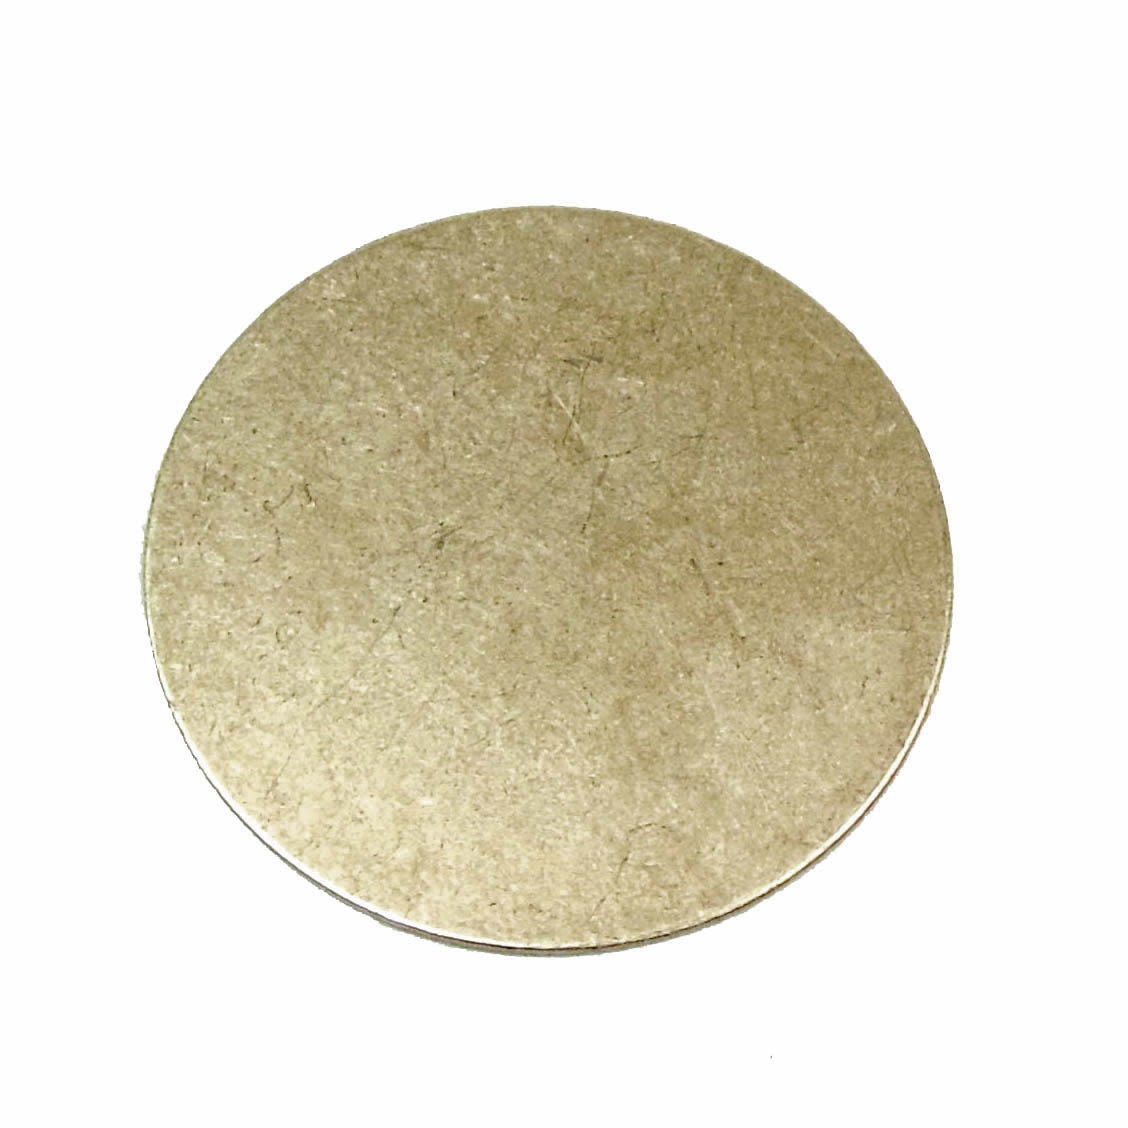 brass jewelry base, drilled base, brass ox, 02138, B'sue Boutiques, nickel free jewelry, US made jewelry, vintage jewellery supplies, jewelry making supplies, antique brass, brass blanks, round jewelry blanks,